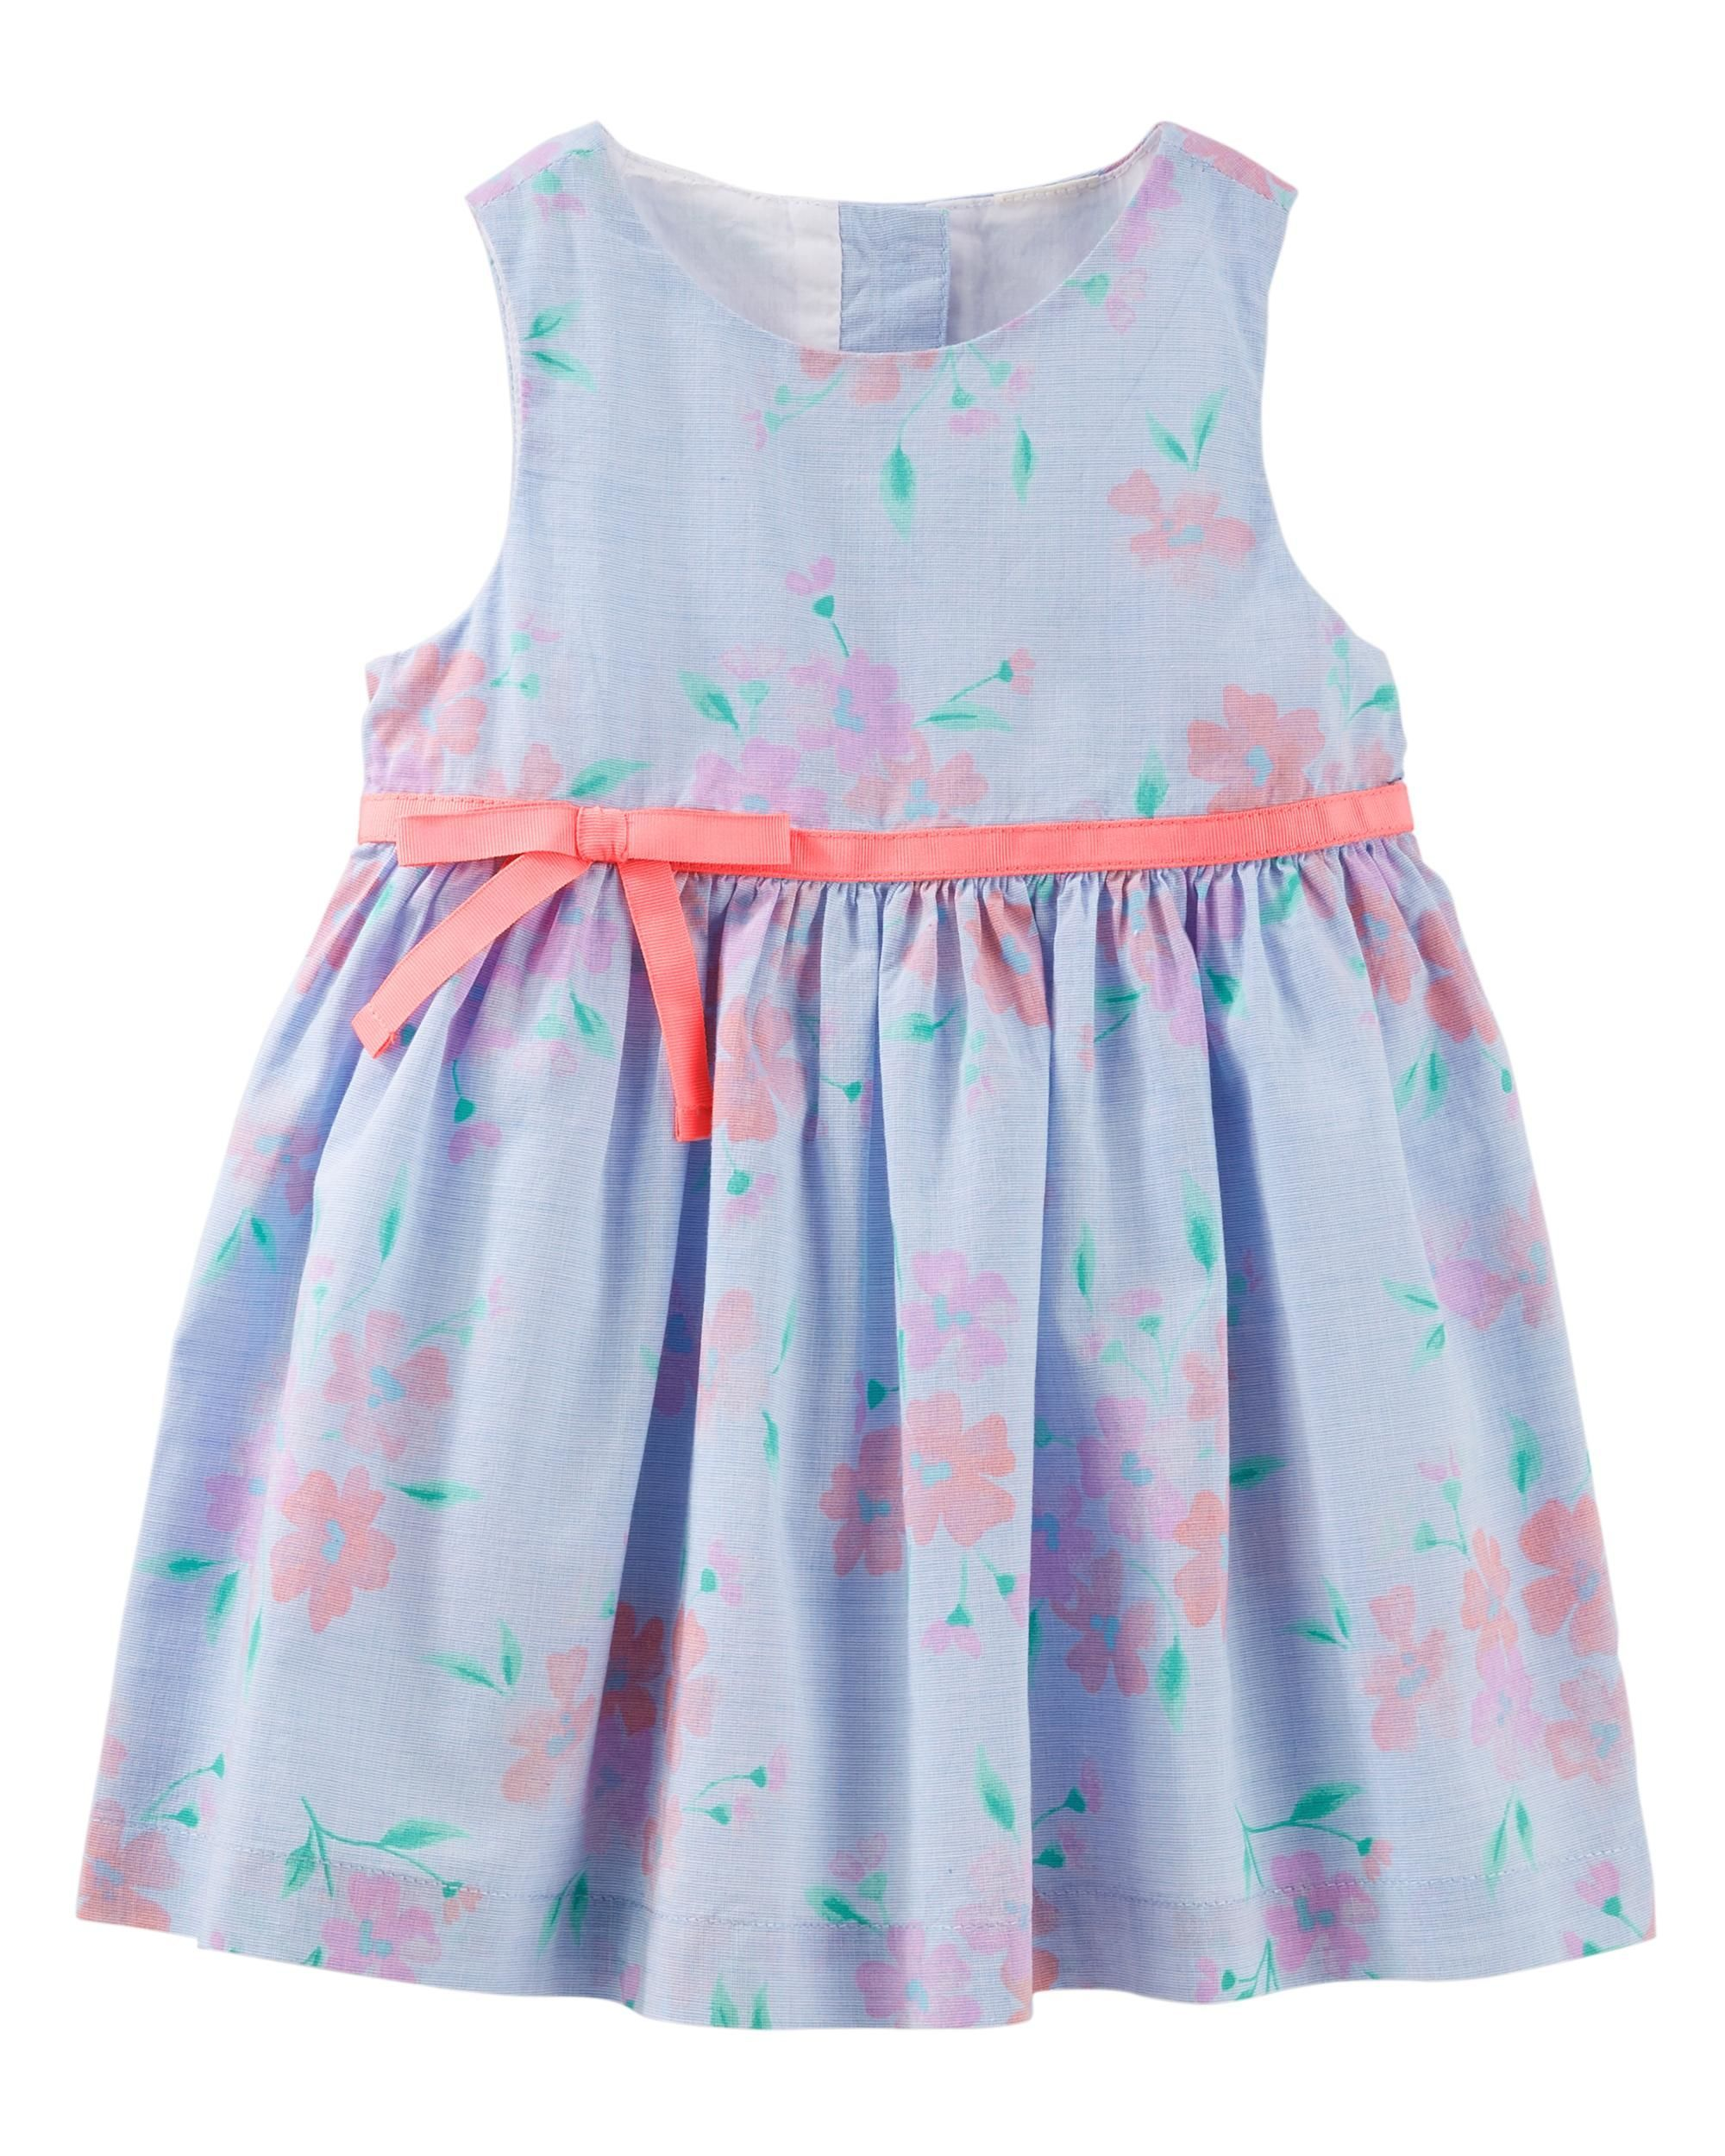 bfdd0f84 A pretty floral pattern and sweet tacked bow are what help make this poplin  dress a must-have for the season! Complete the look with comfy flats and a  ...